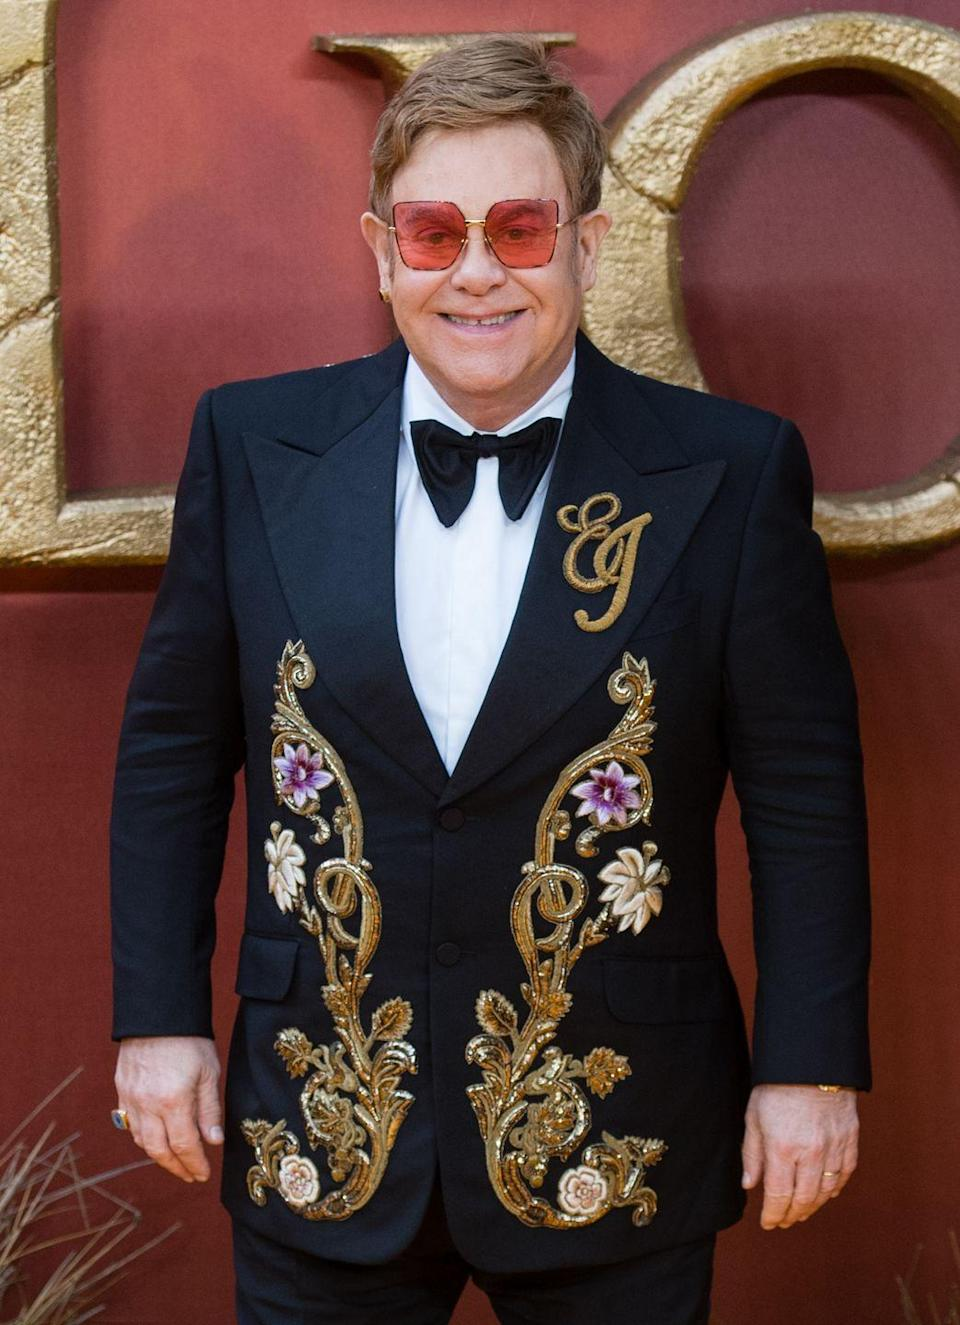 """<p>Sir Elton started releasing music in the late 1960s, but not many people took notice in the beginning. His 1968 release """"I've Been Loving You"""" went largely ignored, and same goes for the next two songs he tried. The 70s proved far more successful for him, when """"Border Song"""" finally broke through on the charts. </p><p><a class=""""link rapid-noclick-resp"""" href=""""https://www.amazon.com/Ive-Been-Loving-You/dp/B07TZKFJQS/ref=sr_1_4?tag=syn-yahoo-20&ascsubtag=%5Bartid%7C10063.g.30535280%5Bsrc%7Cyahoo-us"""" rel=""""nofollow noopener"""" target=""""_blank"""" data-ylk=""""slk:BUY NOW"""">BUY NOW</a></p>"""